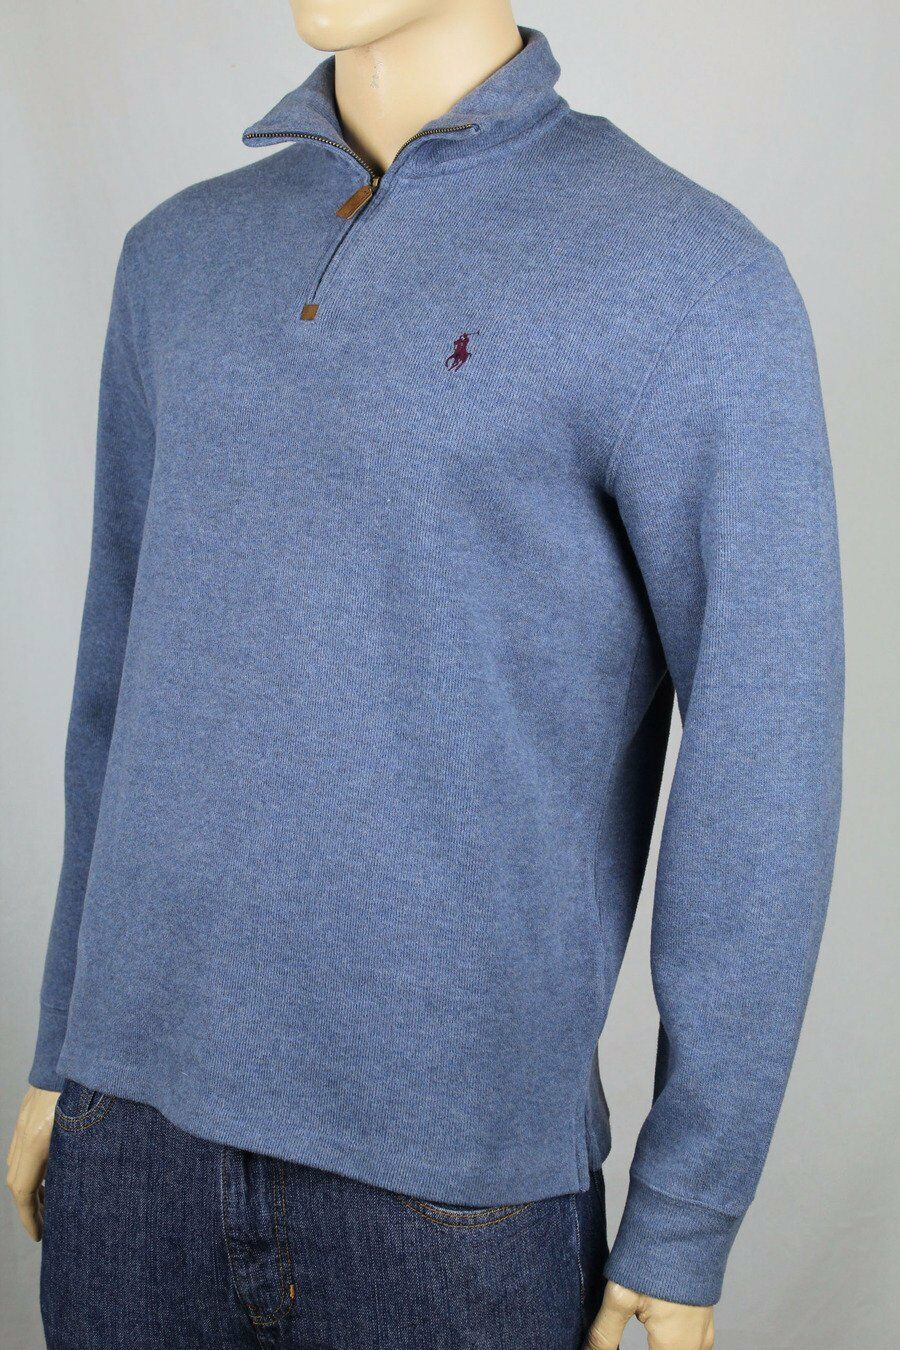 Polo Ralph Lauren bluee 1 2 Half Zip Sweater Purple Pony NWT